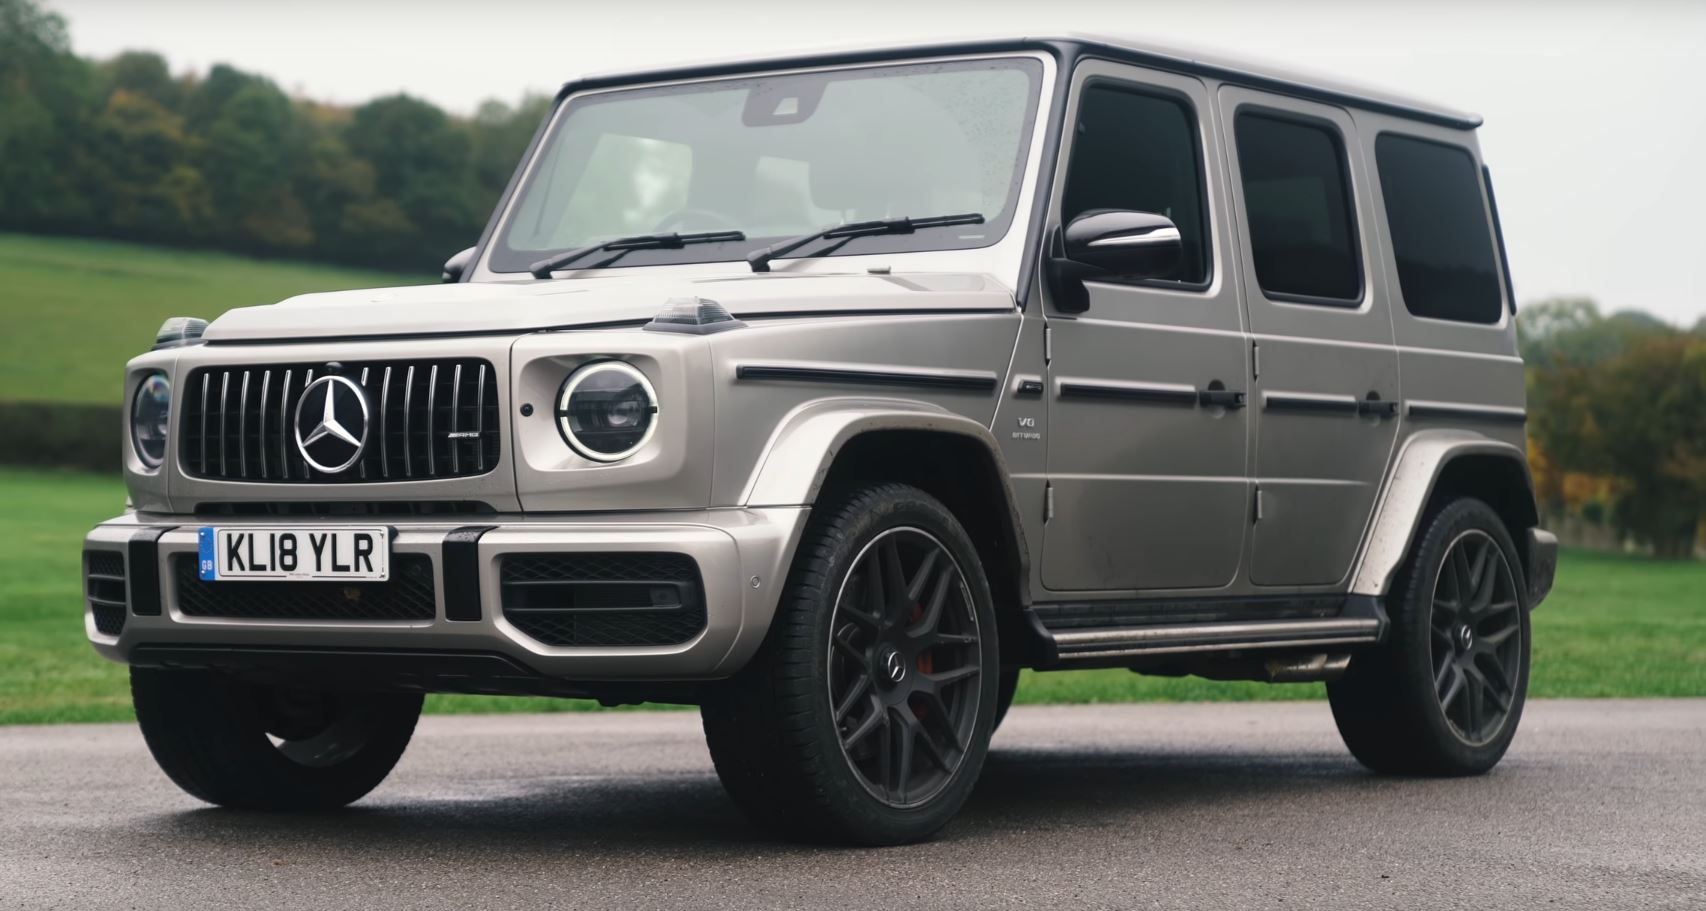 2019 mercedes amg g63 uk review exposes lovable flaws. Black Bedroom Furniture Sets. Home Design Ideas